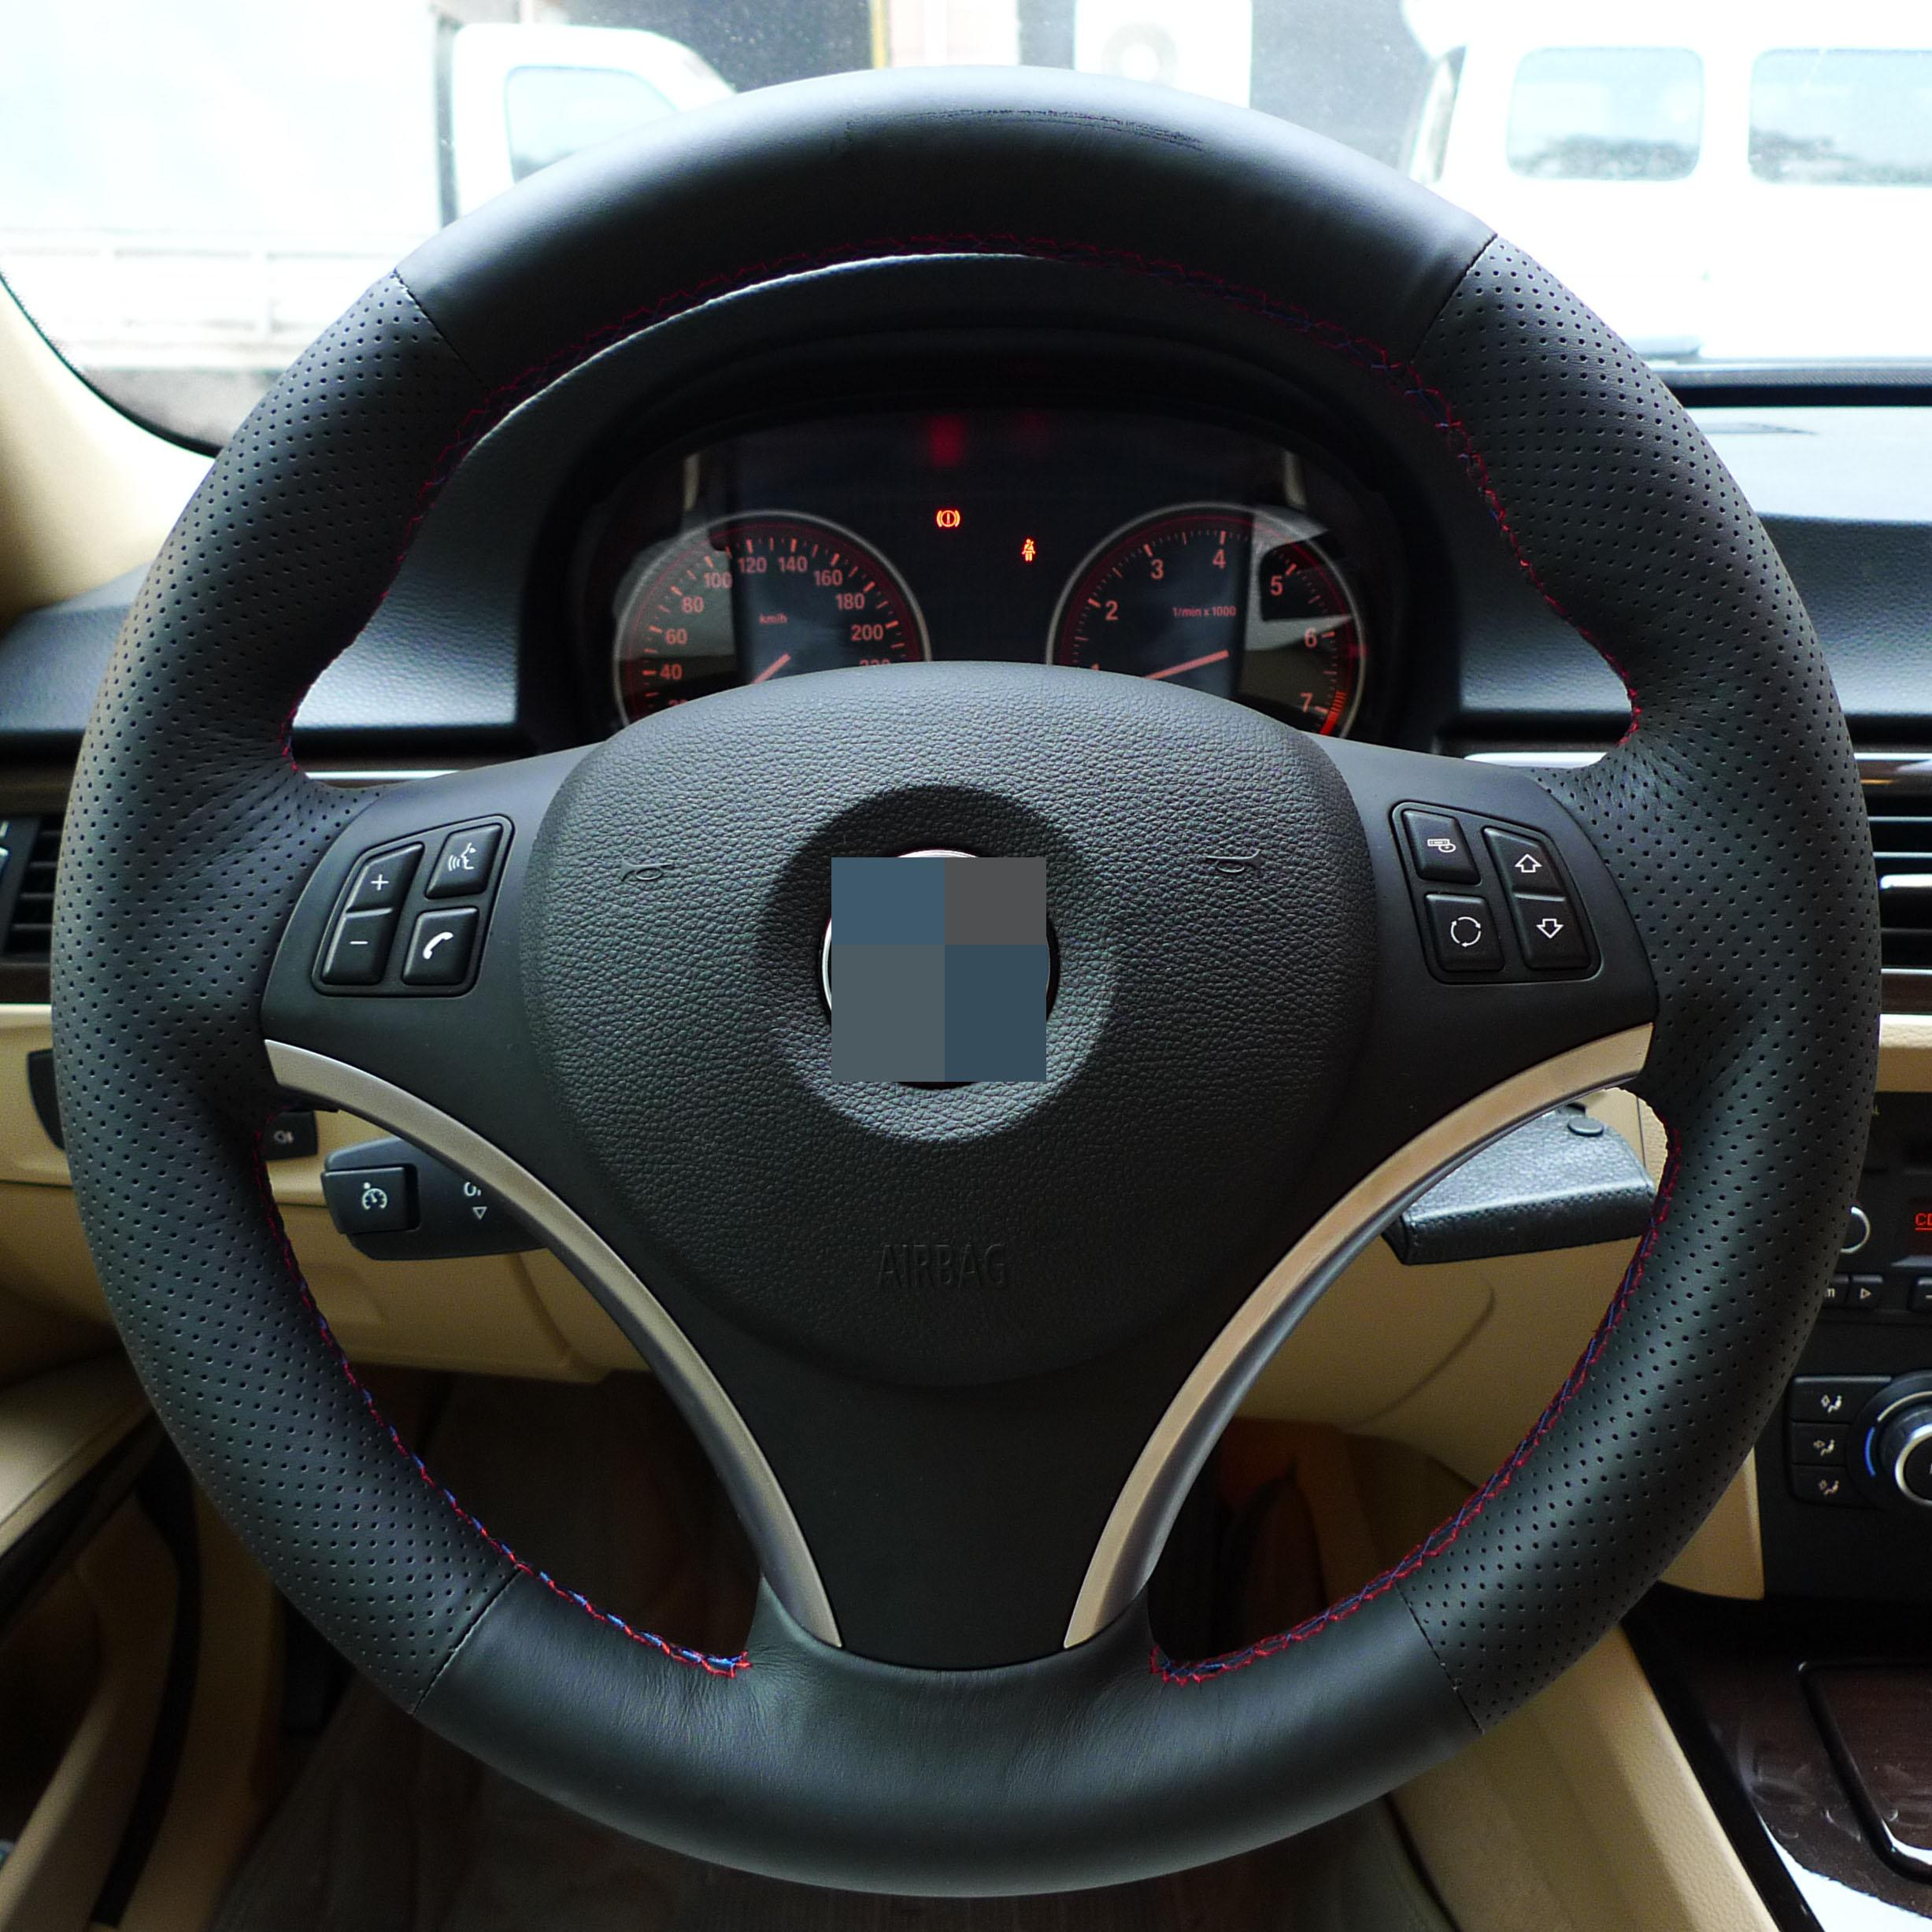 Xuji steering wheel cover for bmw e90 325i xuji car special hand stitched black genuine leather wheel covers for bmw 325i for 325i for 325i bmw online with